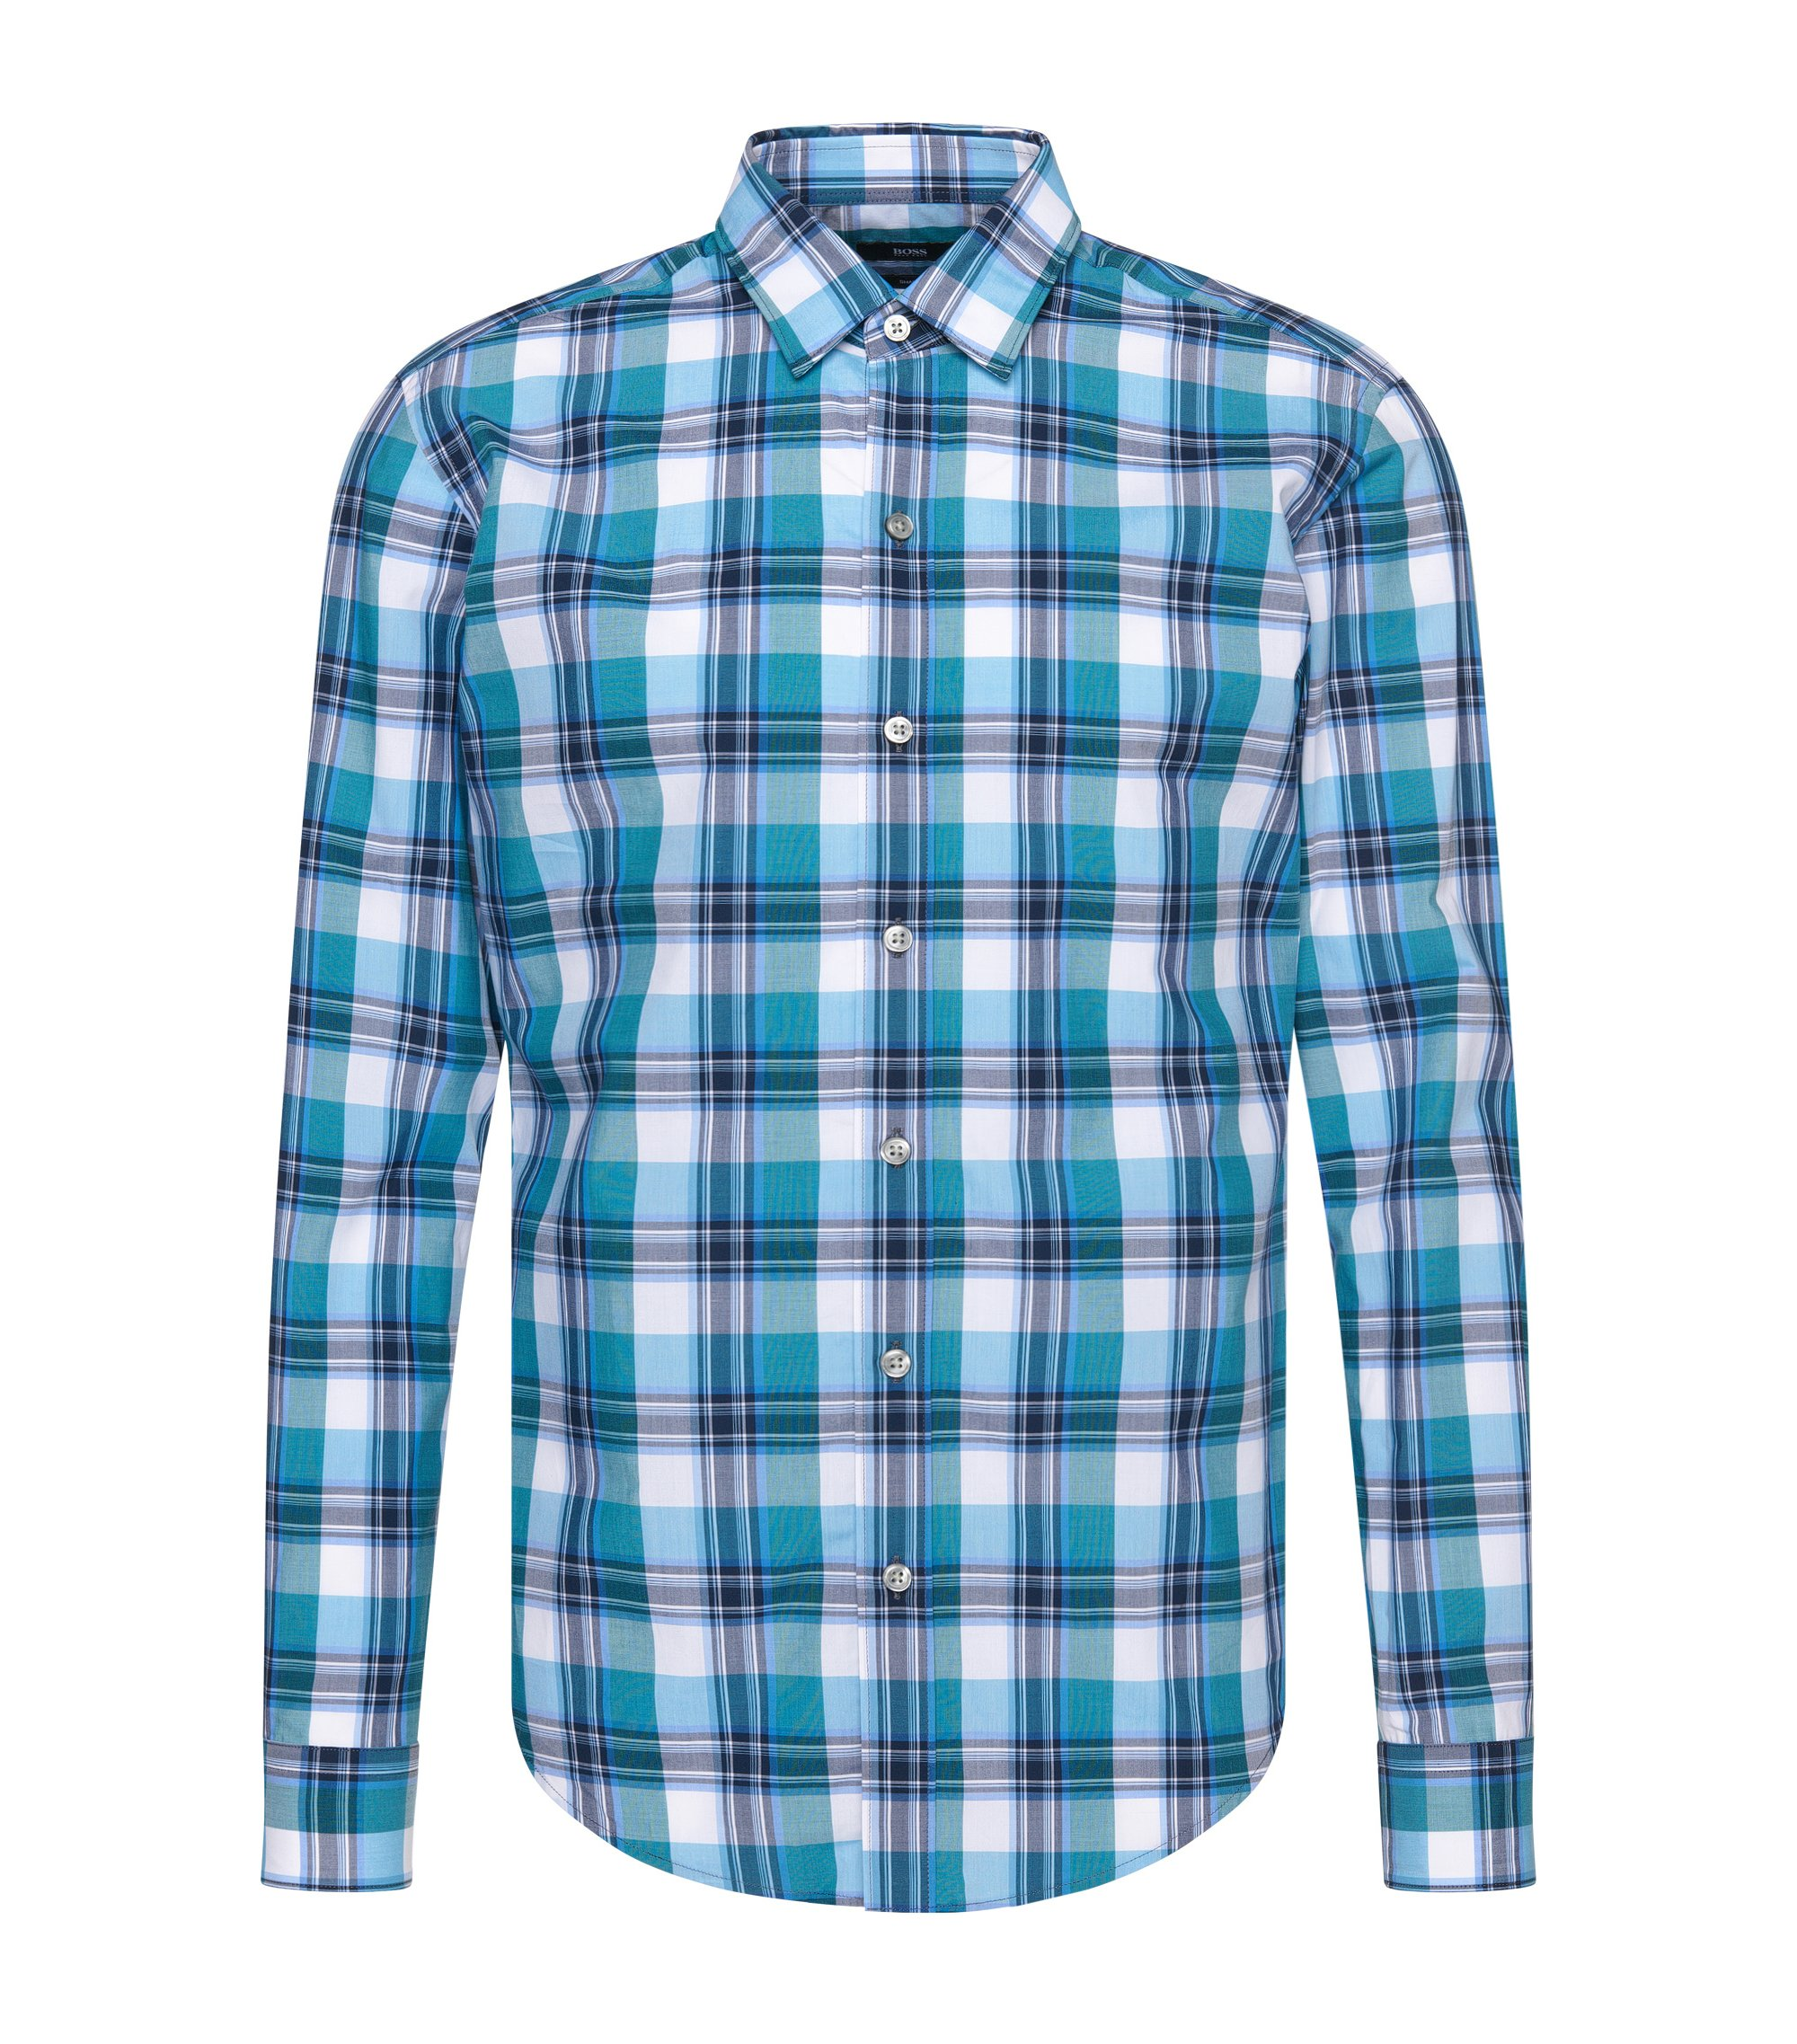 Cotton Button Down Shirt, Slim Fit | Robbie, Light Blue